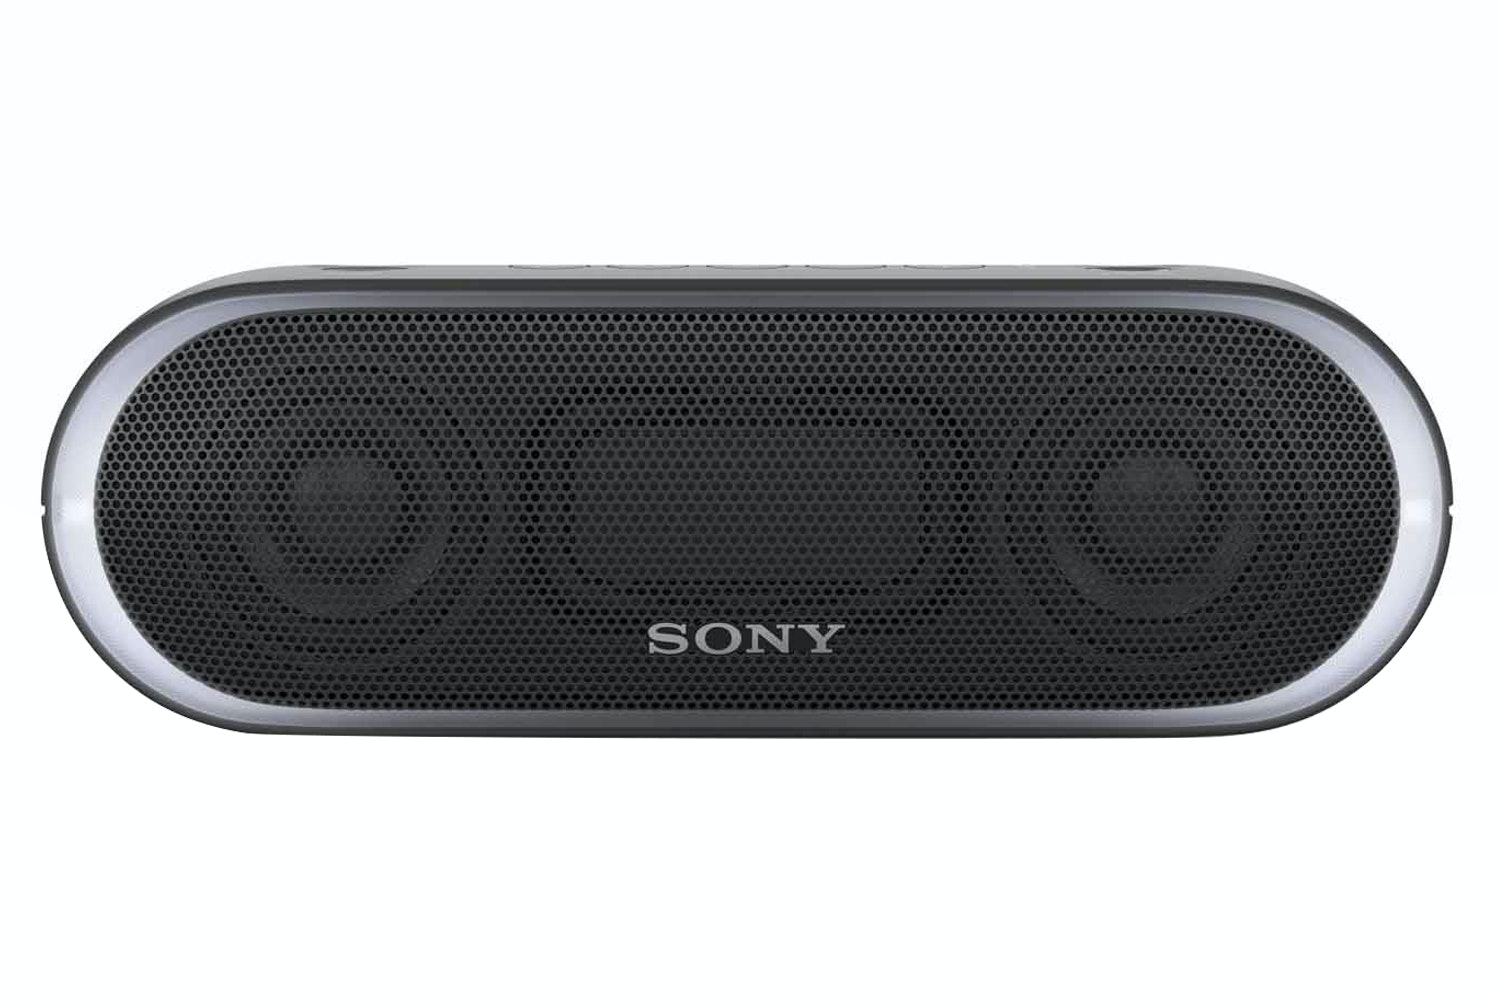 Sony Bluetooth Speaker | SRS-XB20 | Black